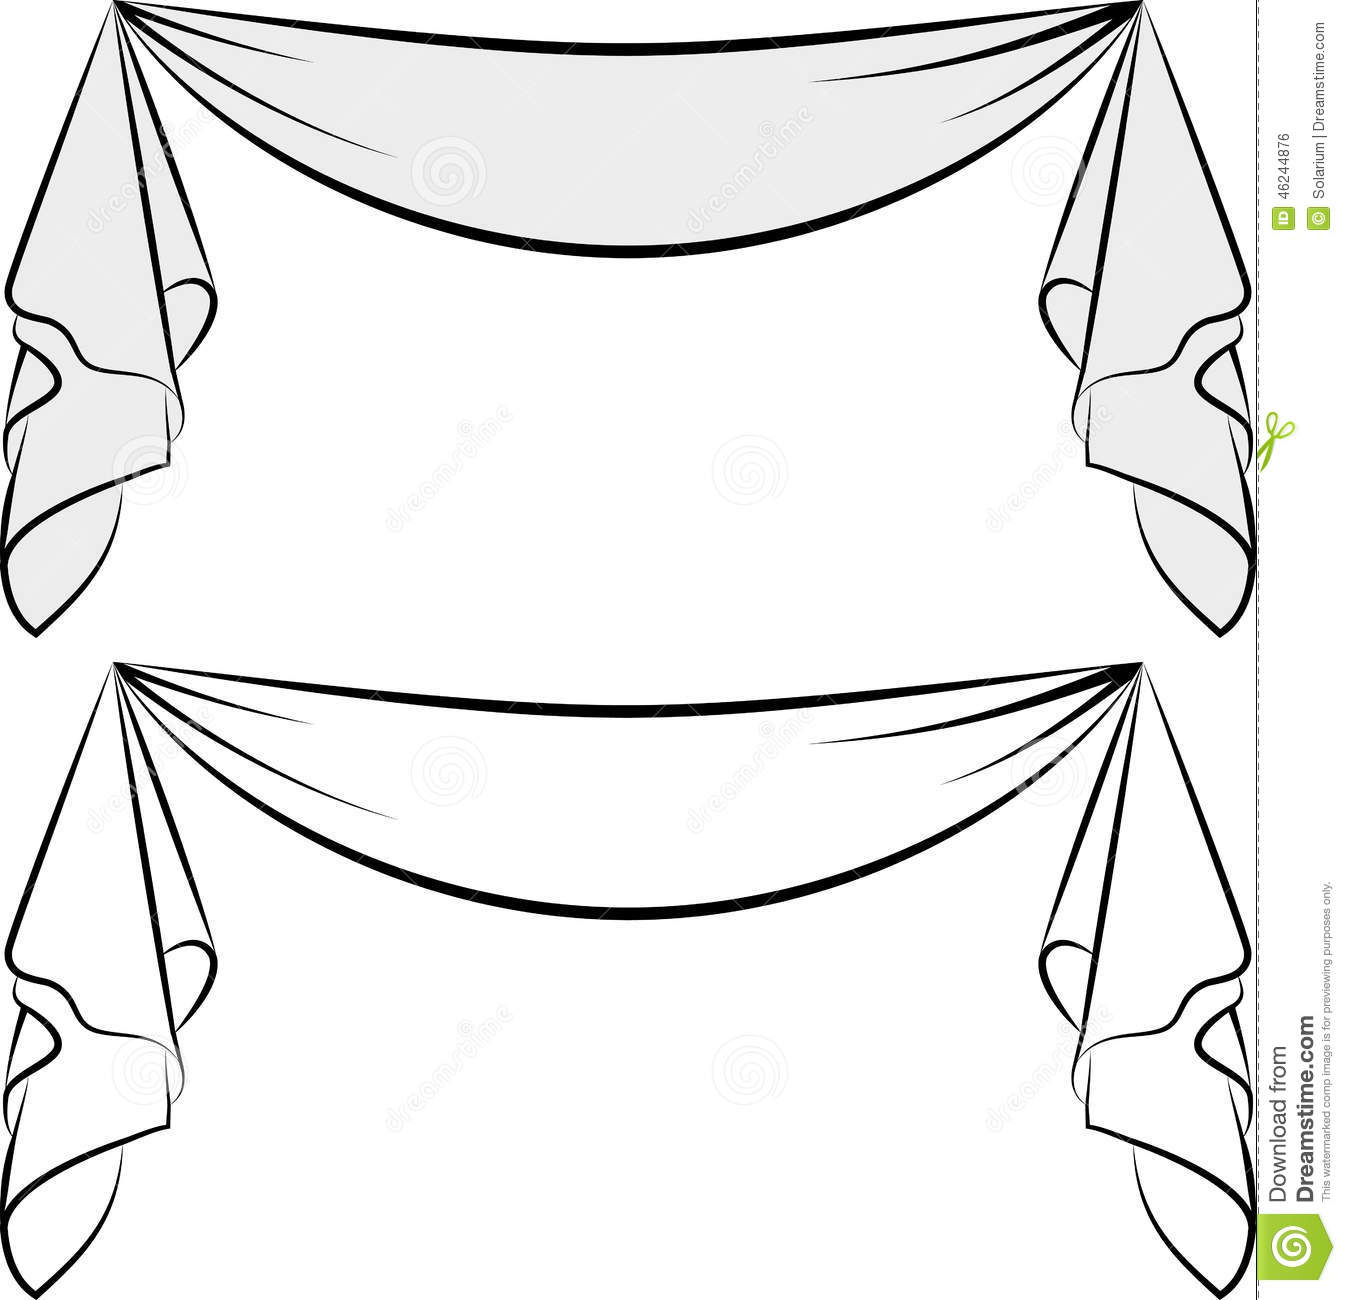 Decorative Sash Stock Vector.